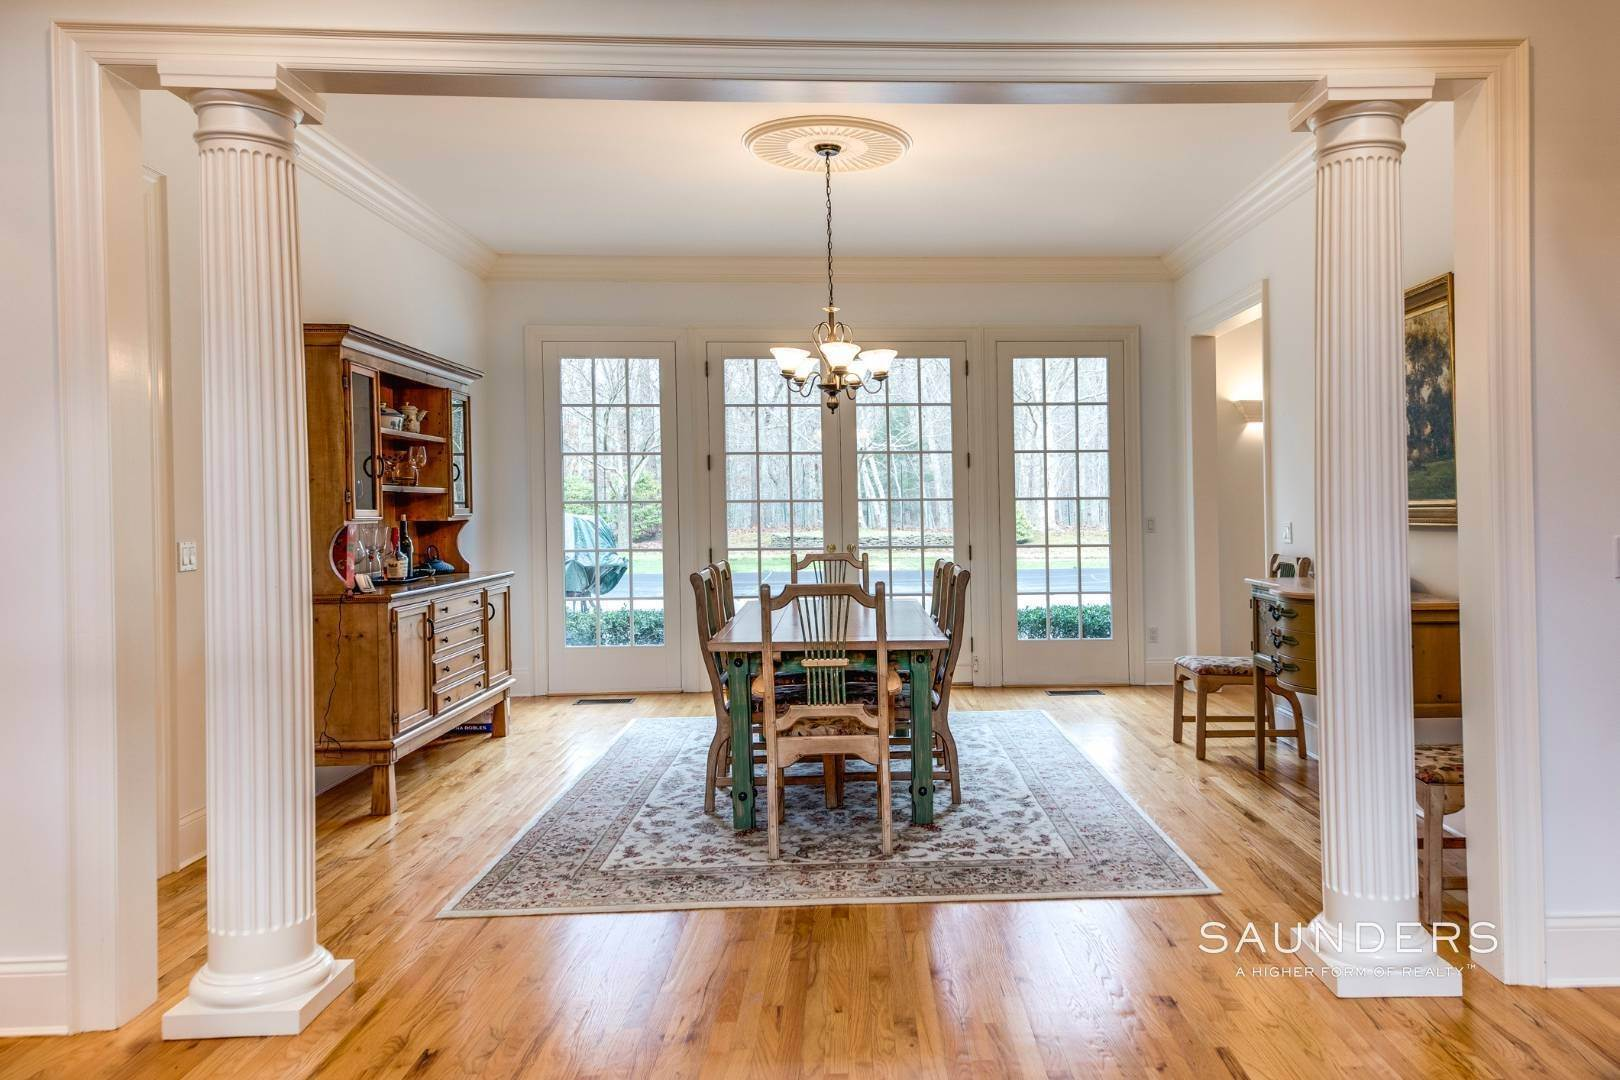 4. Single Family Homes for Sale at Builder's Own, Hamptons Traditional 33 Cedar Trails, East Hampton, East Hampton Town, NY 11937